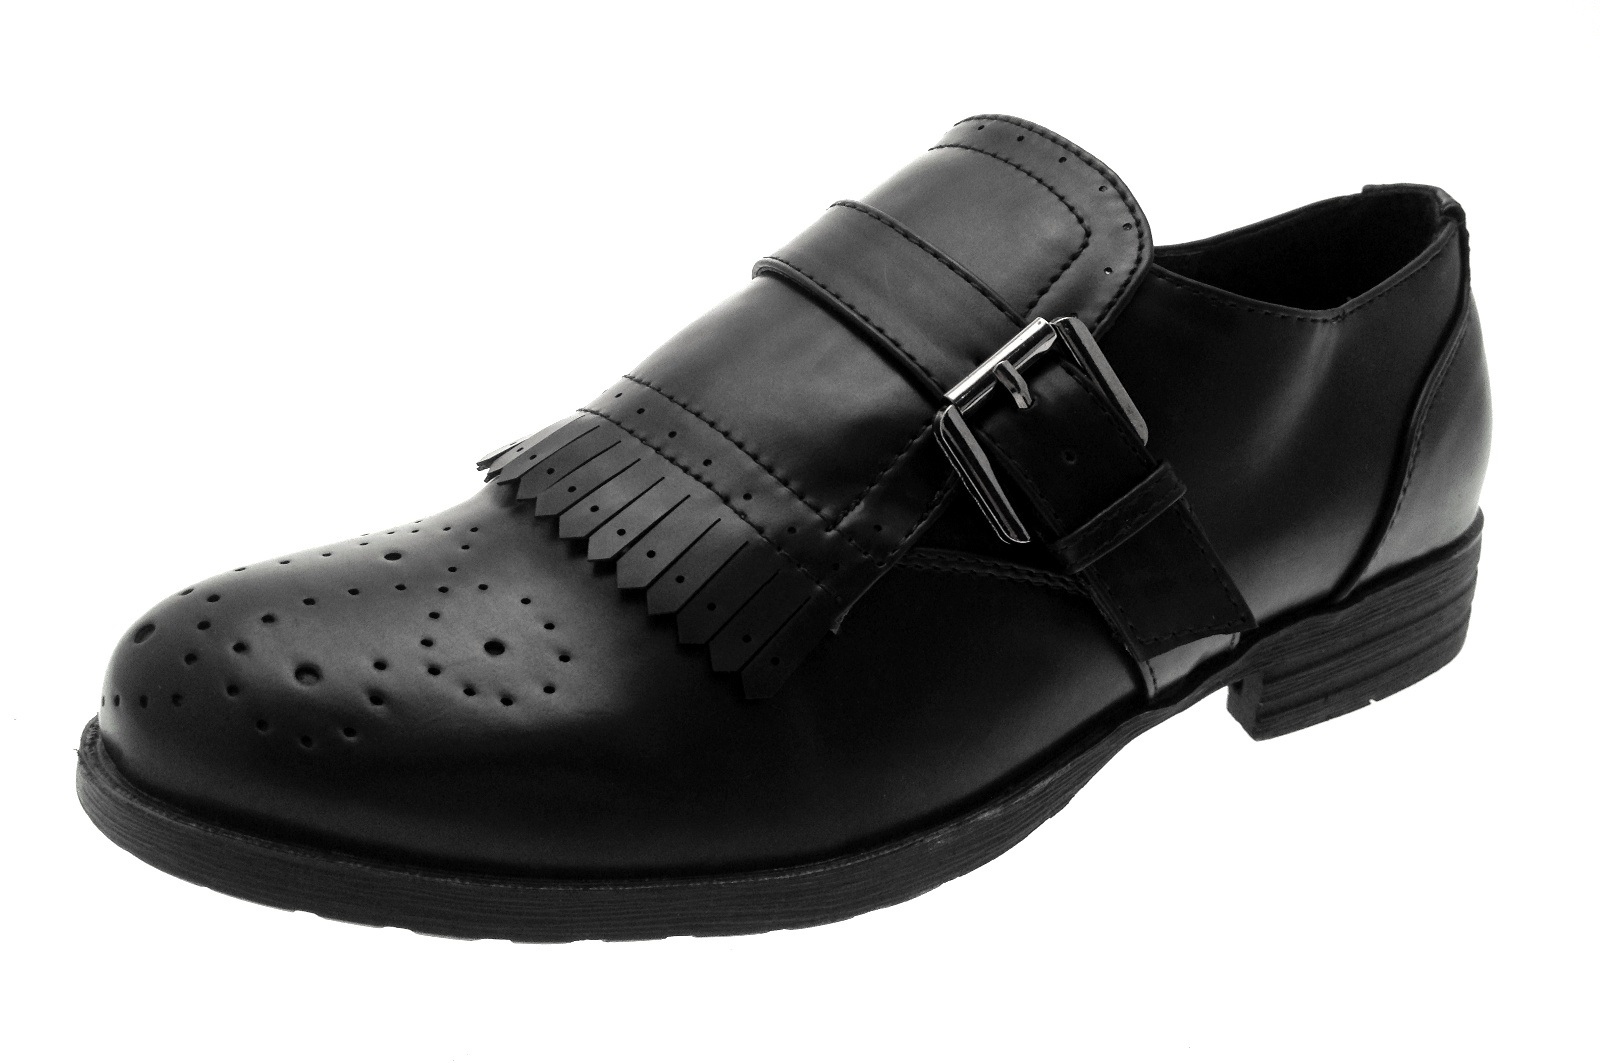 3fd7d807973eb Womens Low Block Heel Brogues Buckle Work Loafers Casual Ladies Shoes Size